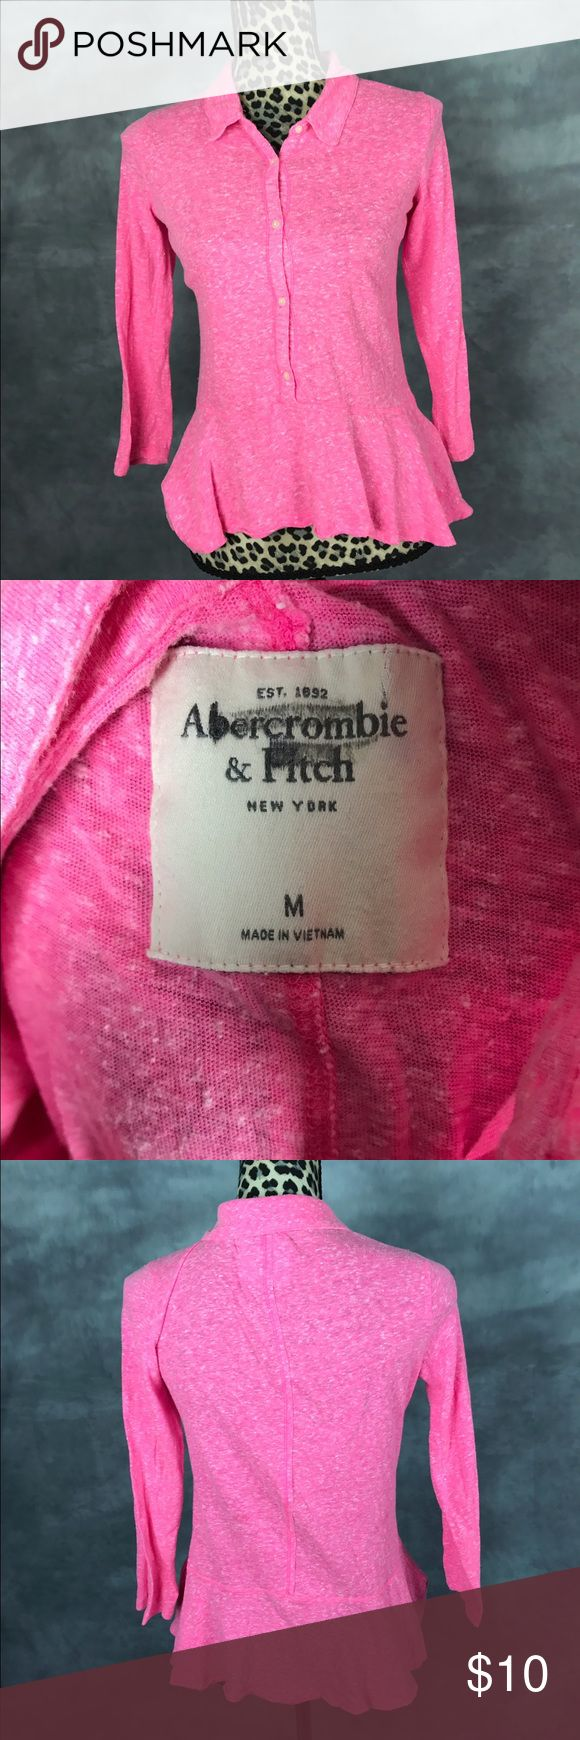 Abercrombie And Fitch t-shirt hot pink Great used condition Abercrombie & Fitch Tops Tees - Long Sleeve